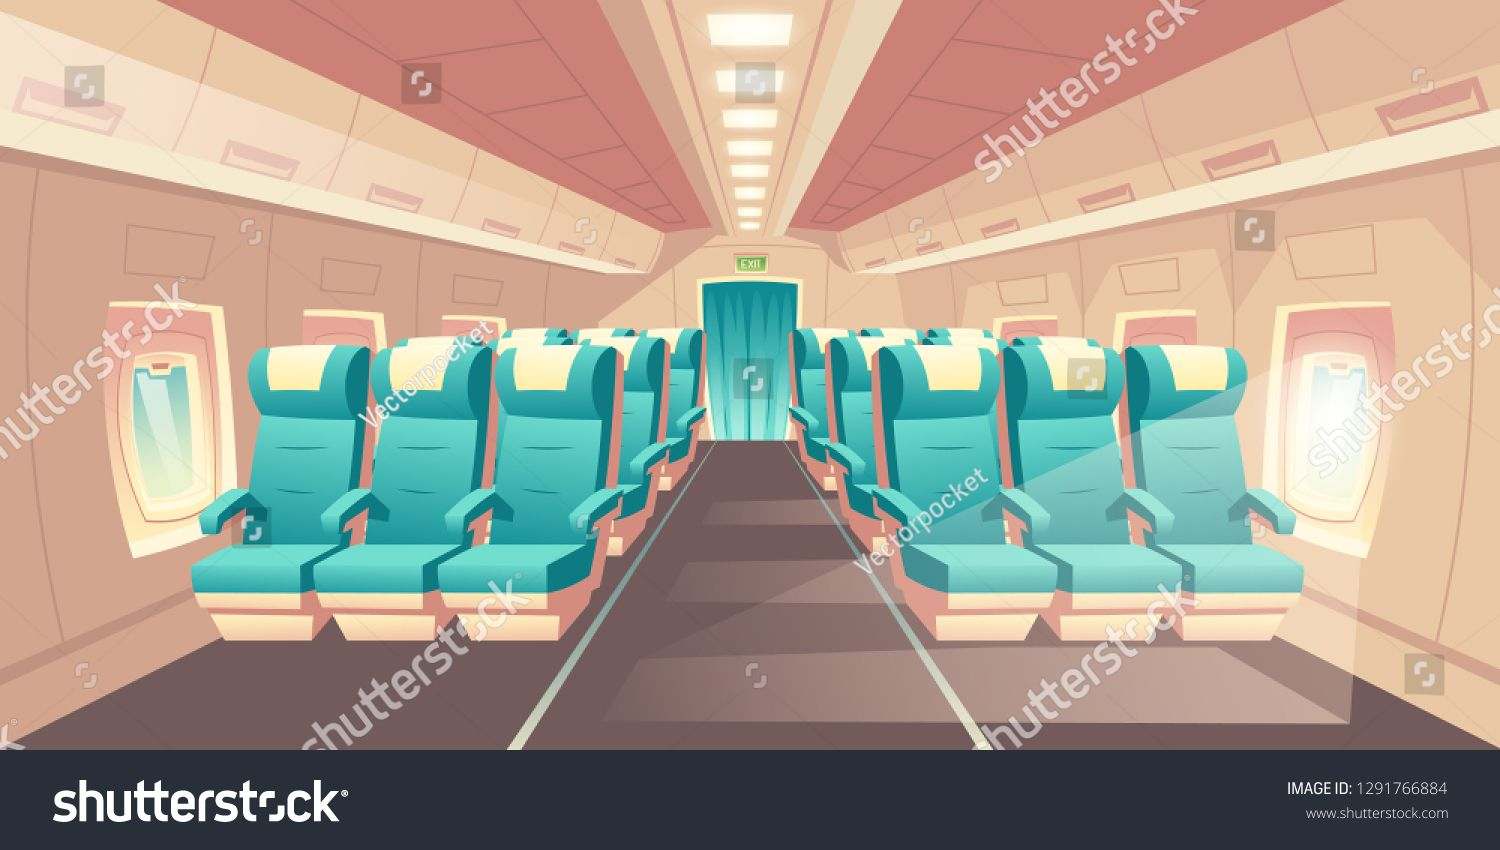 Vector Illustration With A Cabin Of A Plane Econom Class Seats With Blue Chairs Bright Salon With Aviation Careers Blue Chair Air Hostess Training Institute